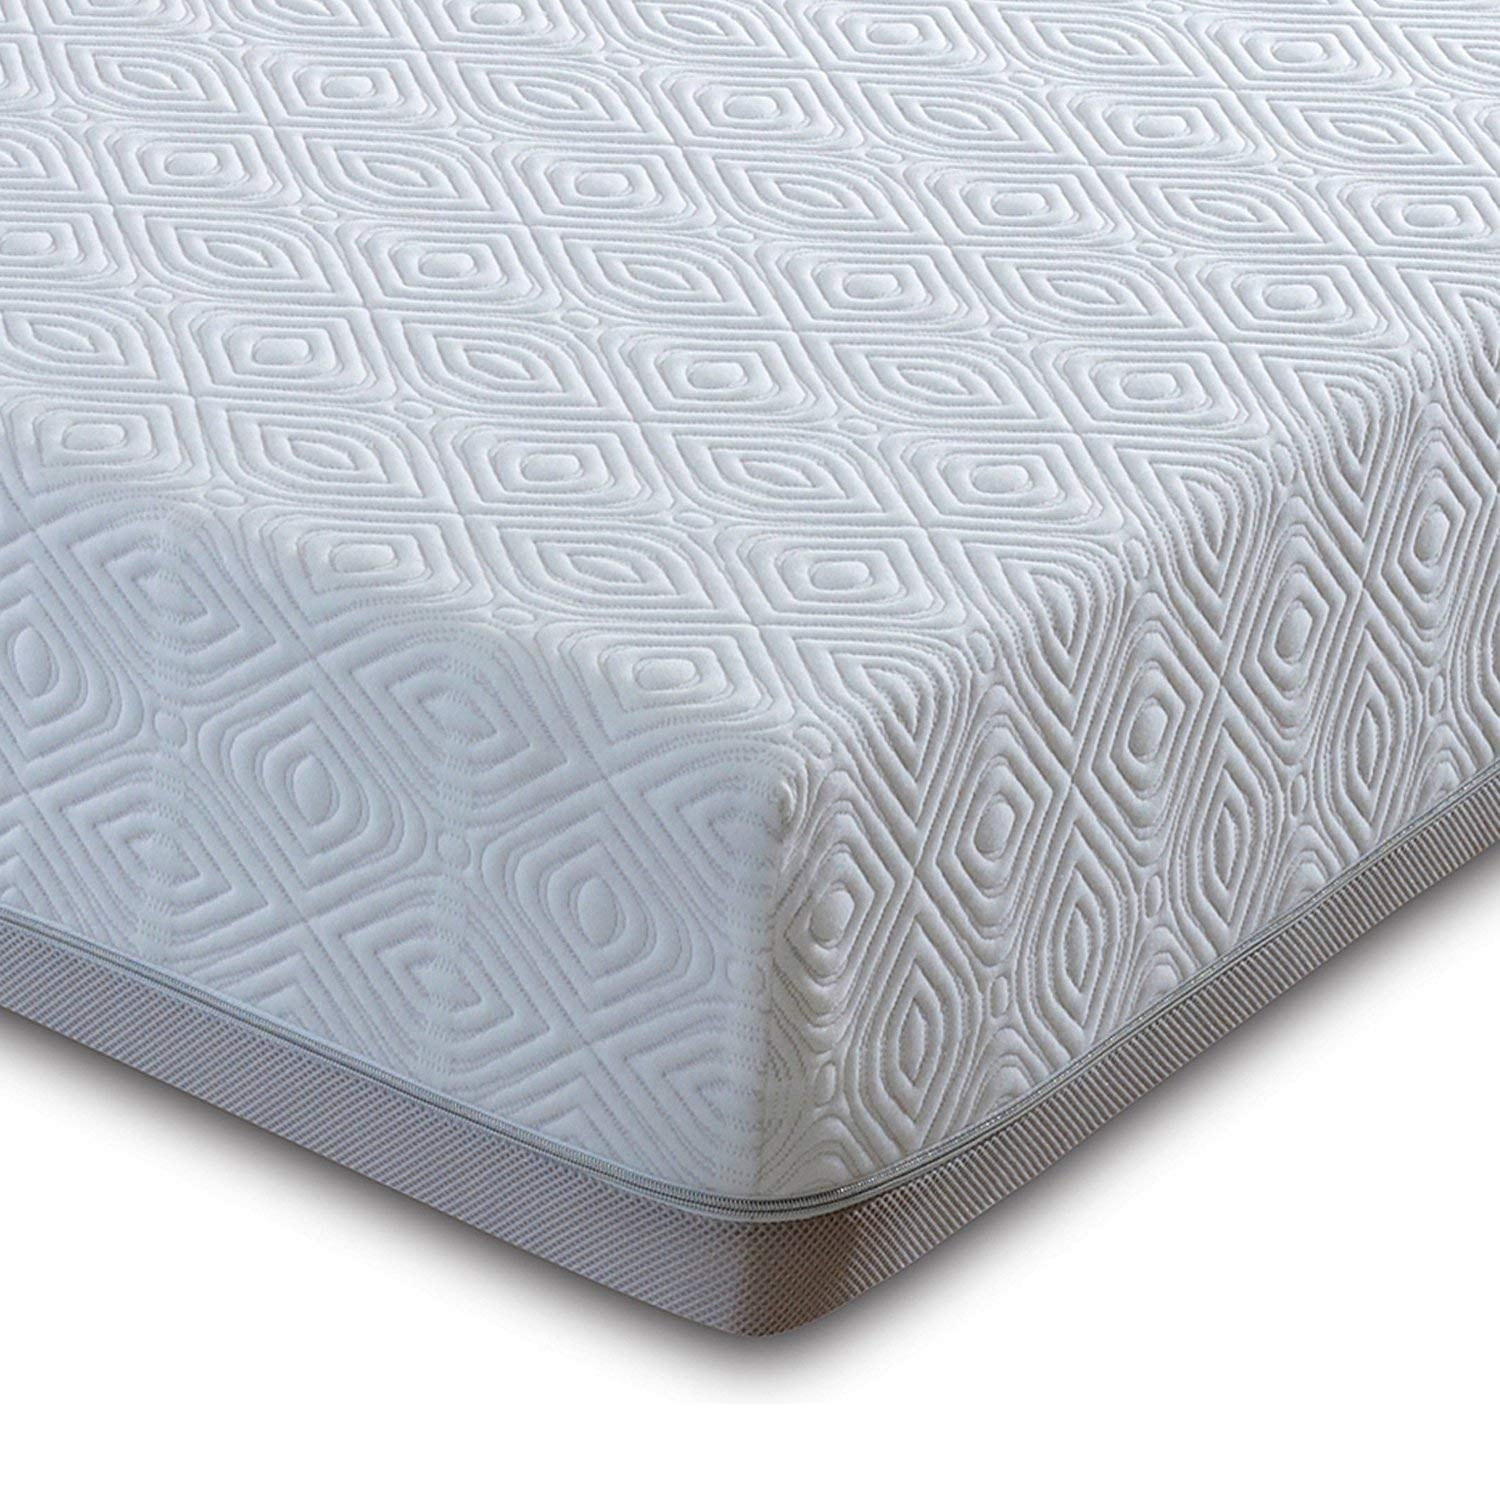 Nytex HYBRID Memory Foam Mattress, King Size 5ft, 60 Night Trial, Made in the UK